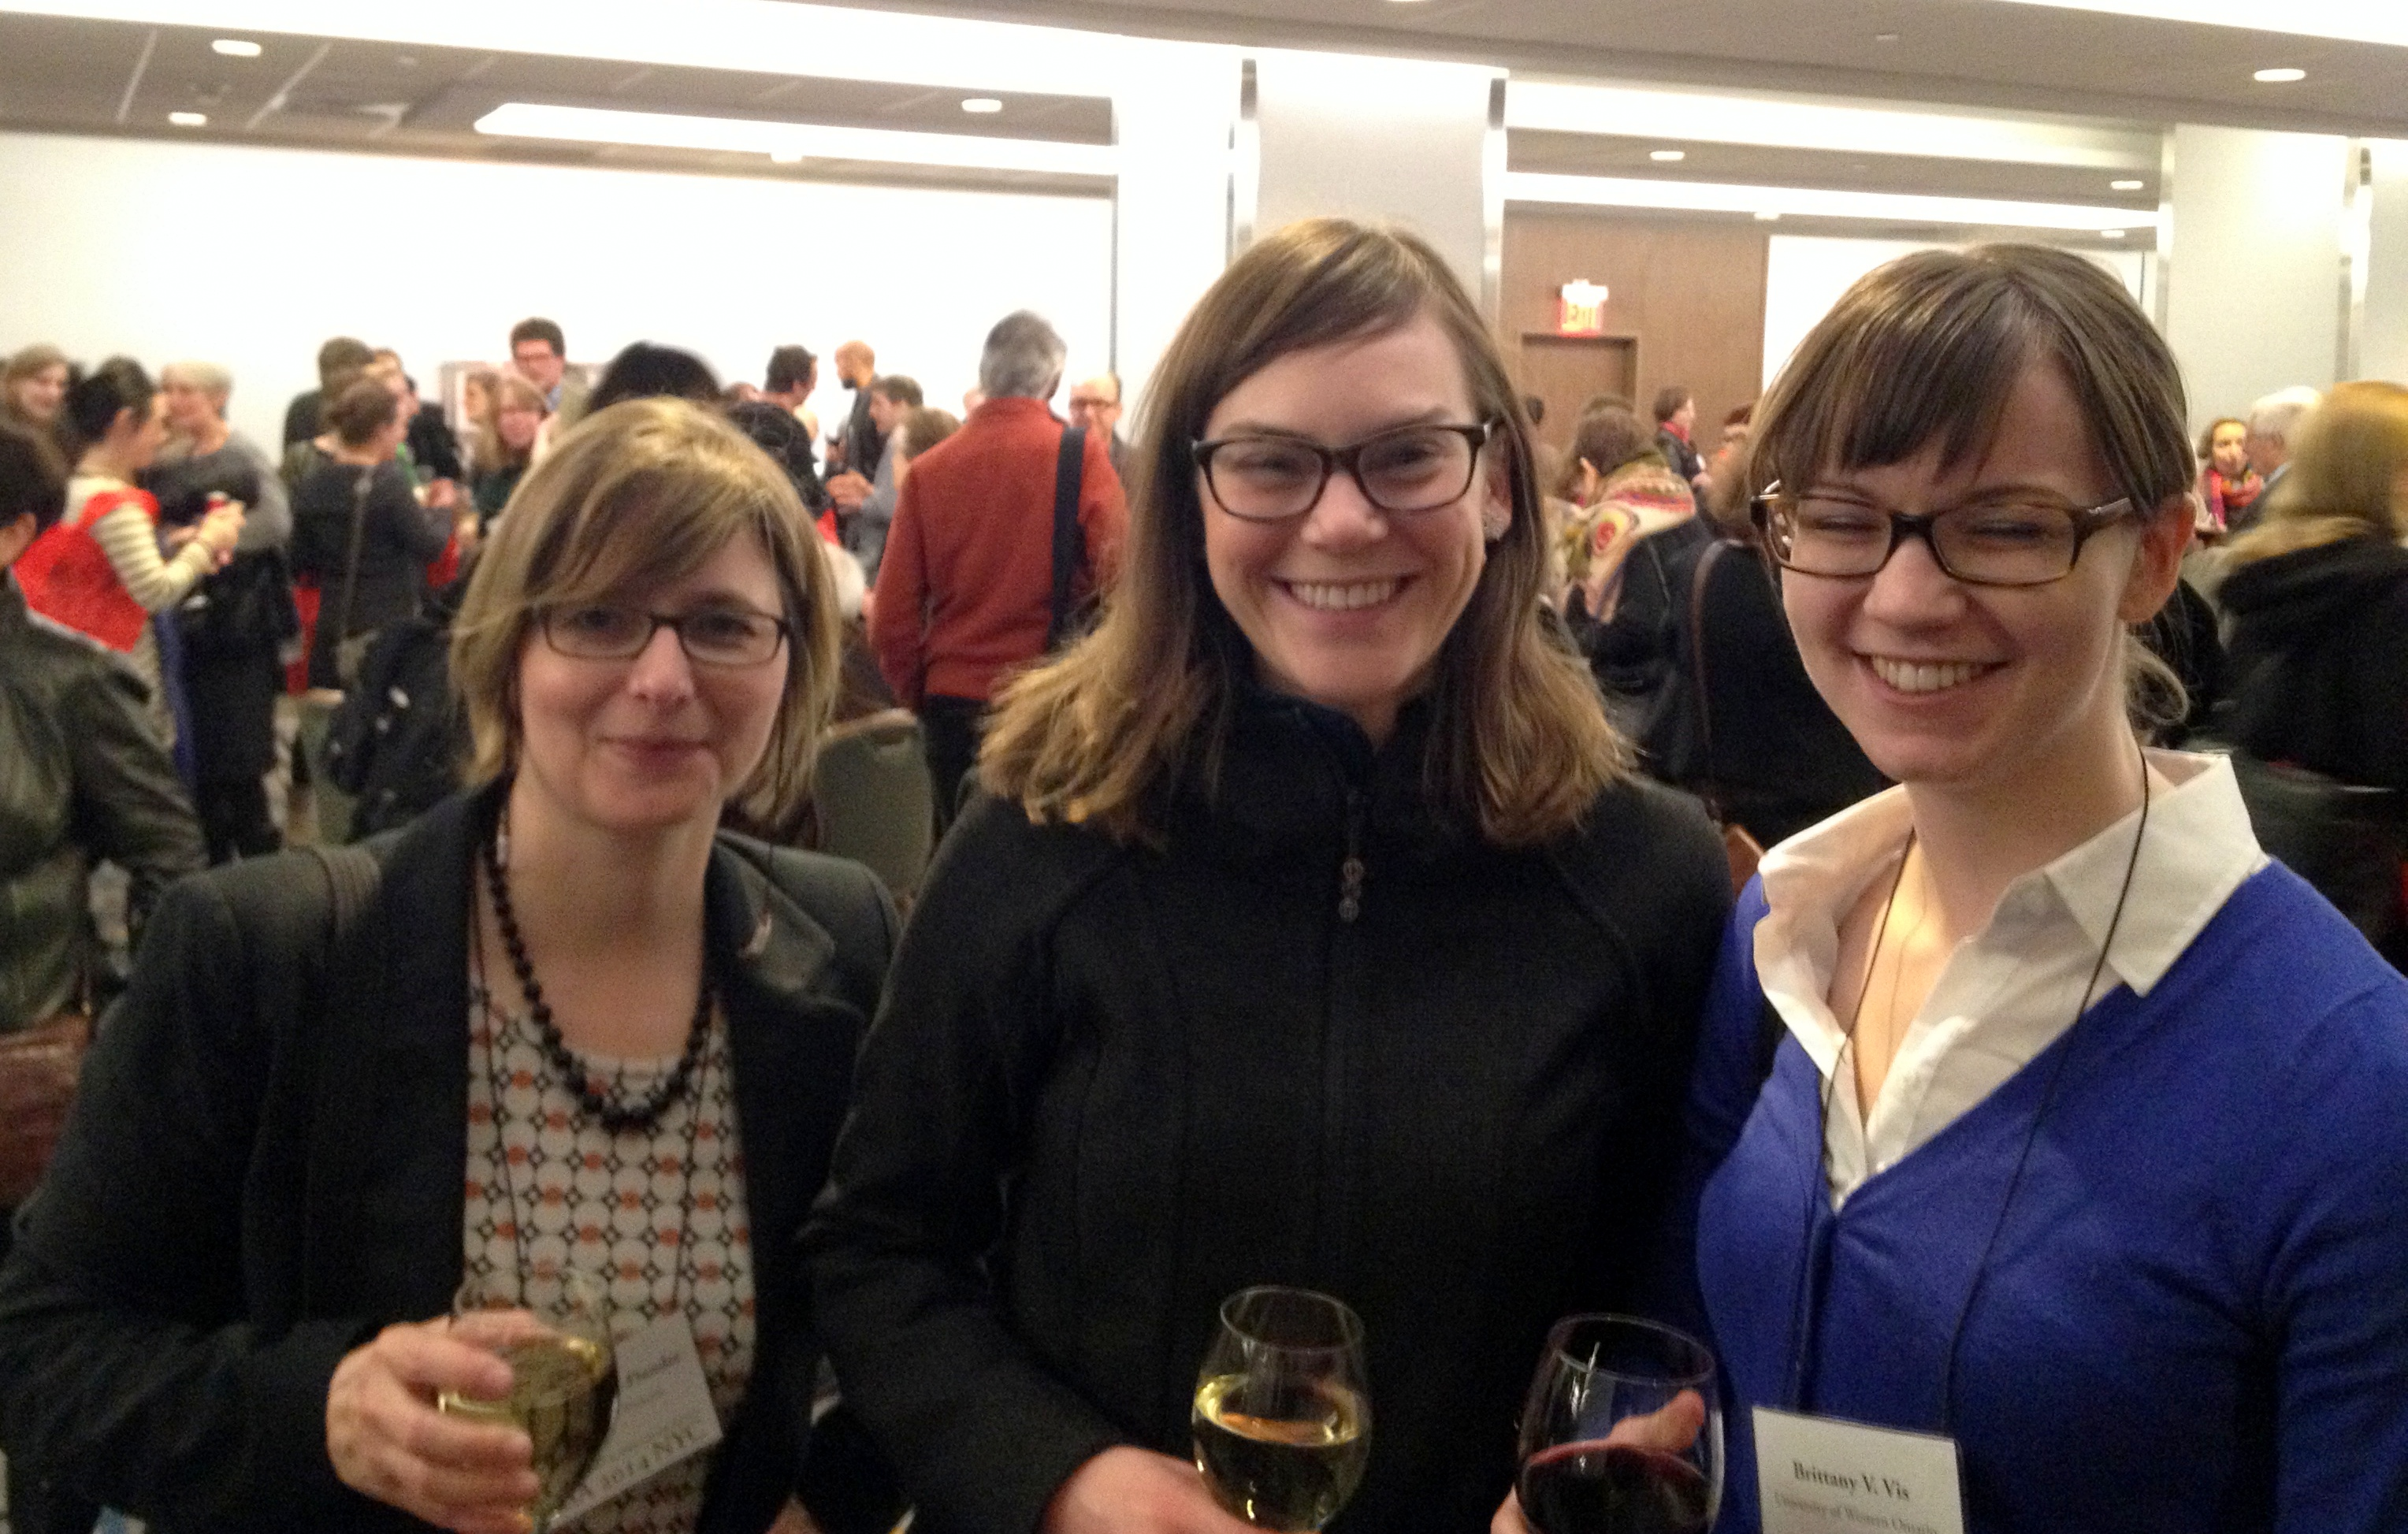 Kim @ the RSA Opening Reception with some